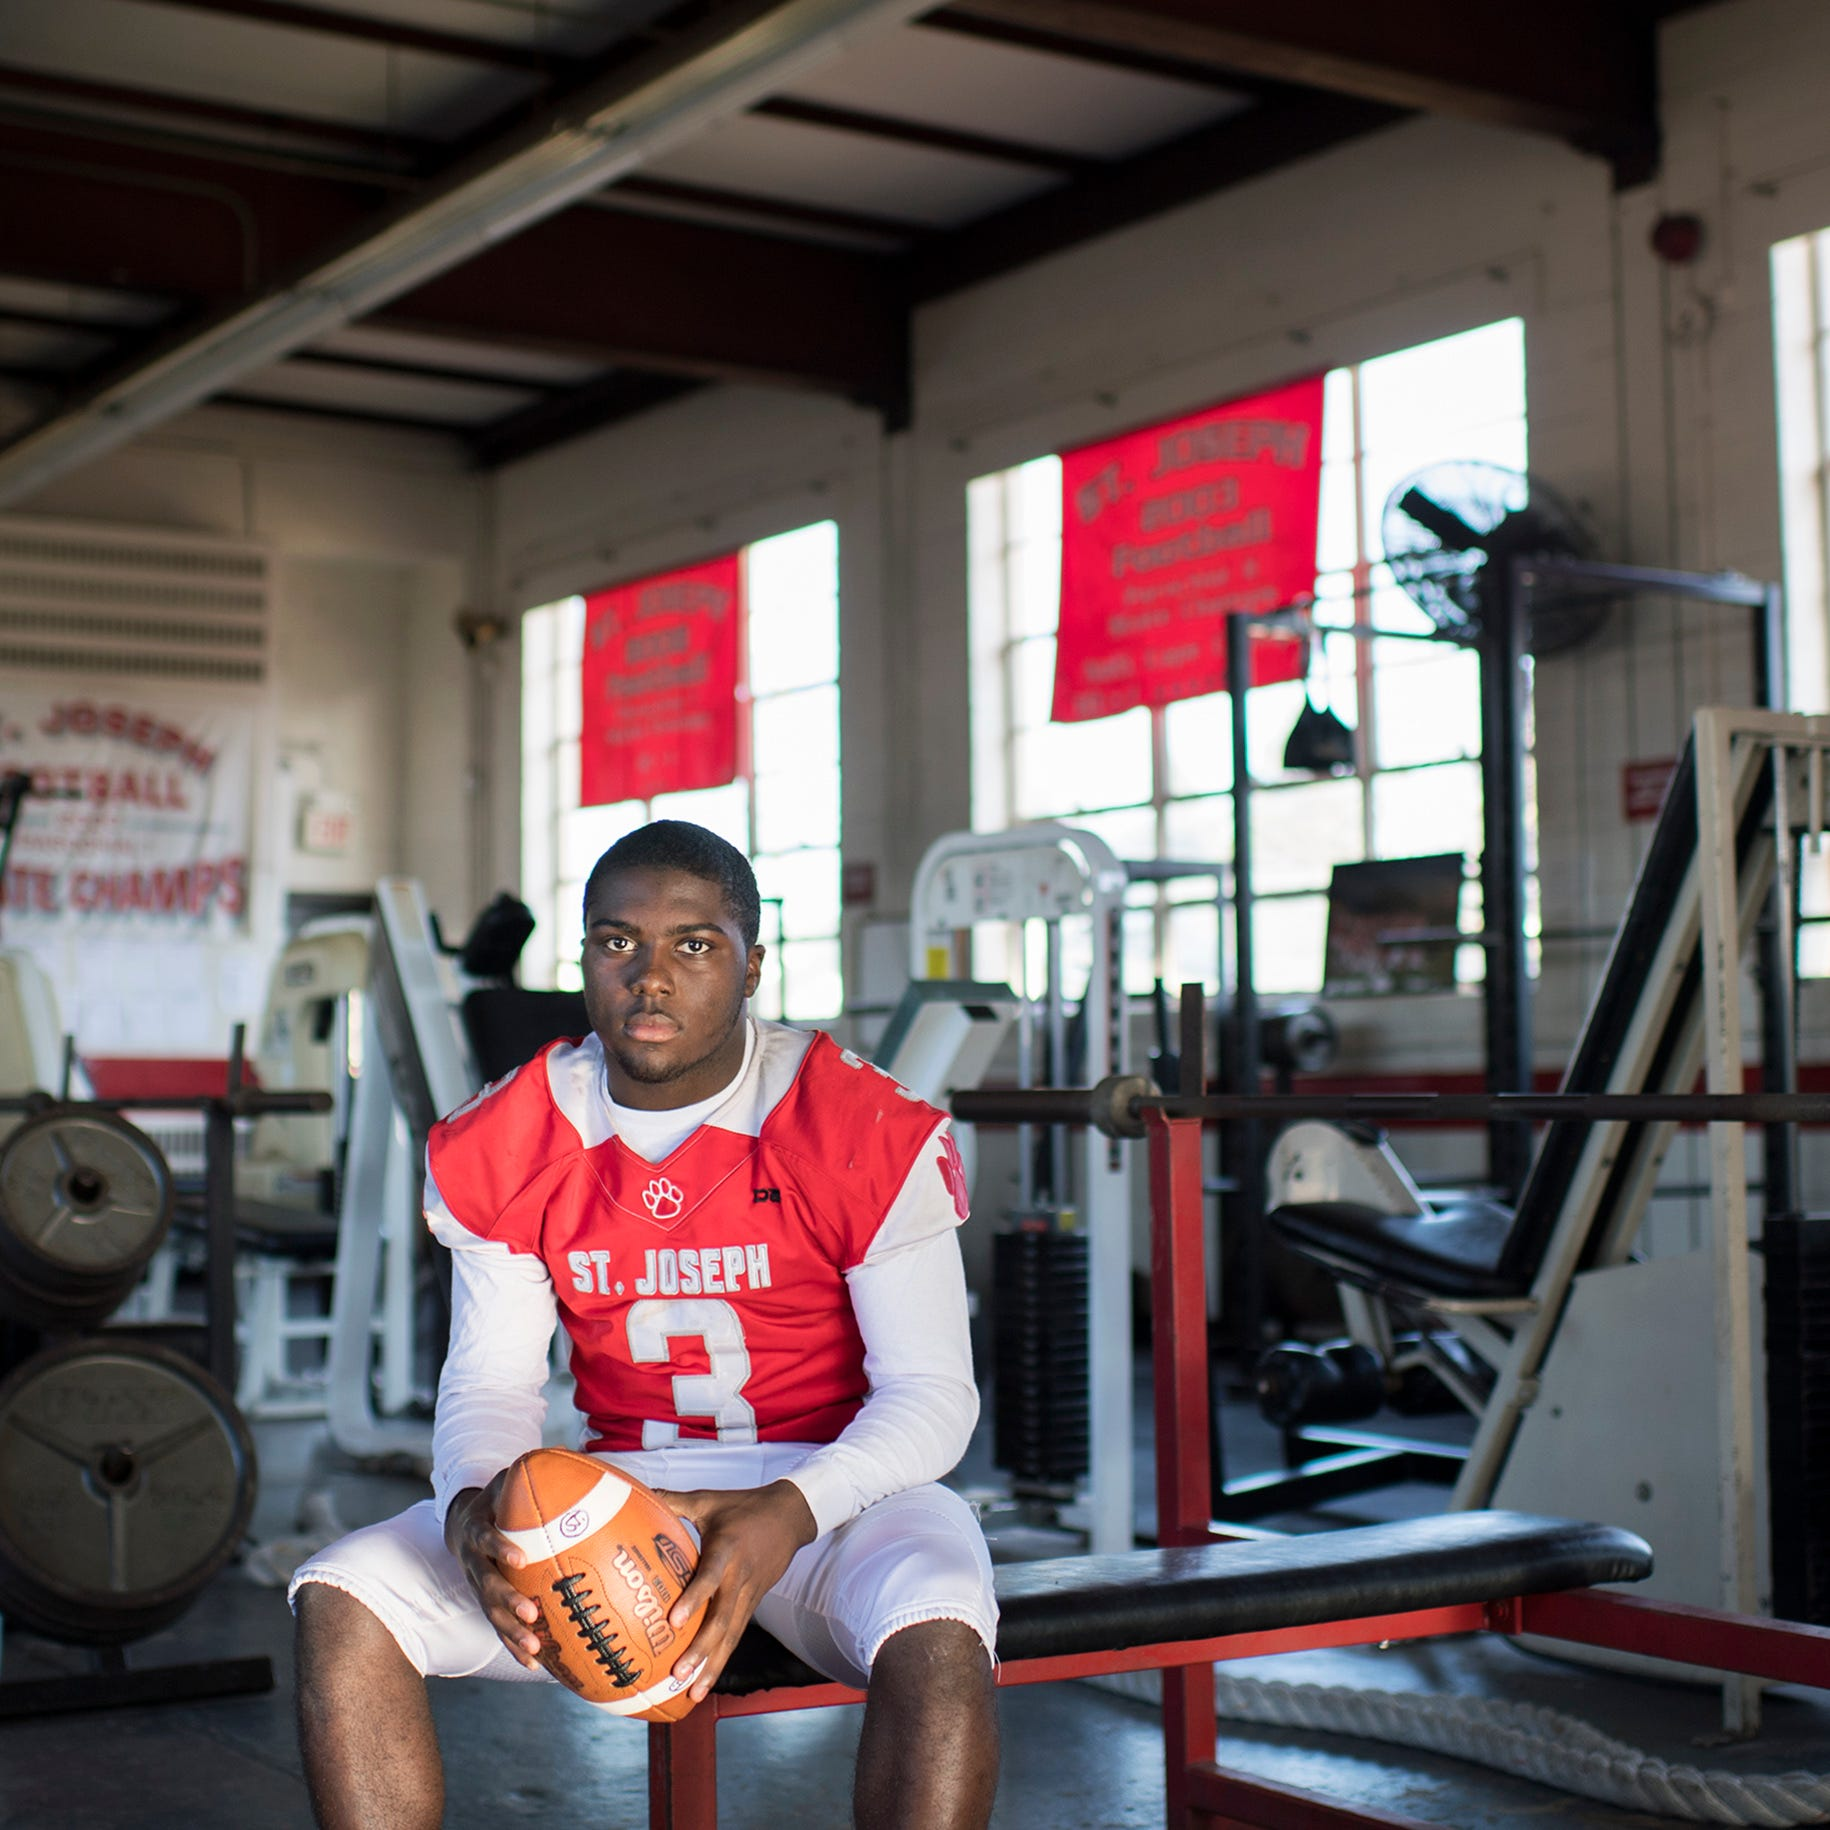 South Jersey football: St. Joseph junior Jada Byers is the Offensive Player of the Year